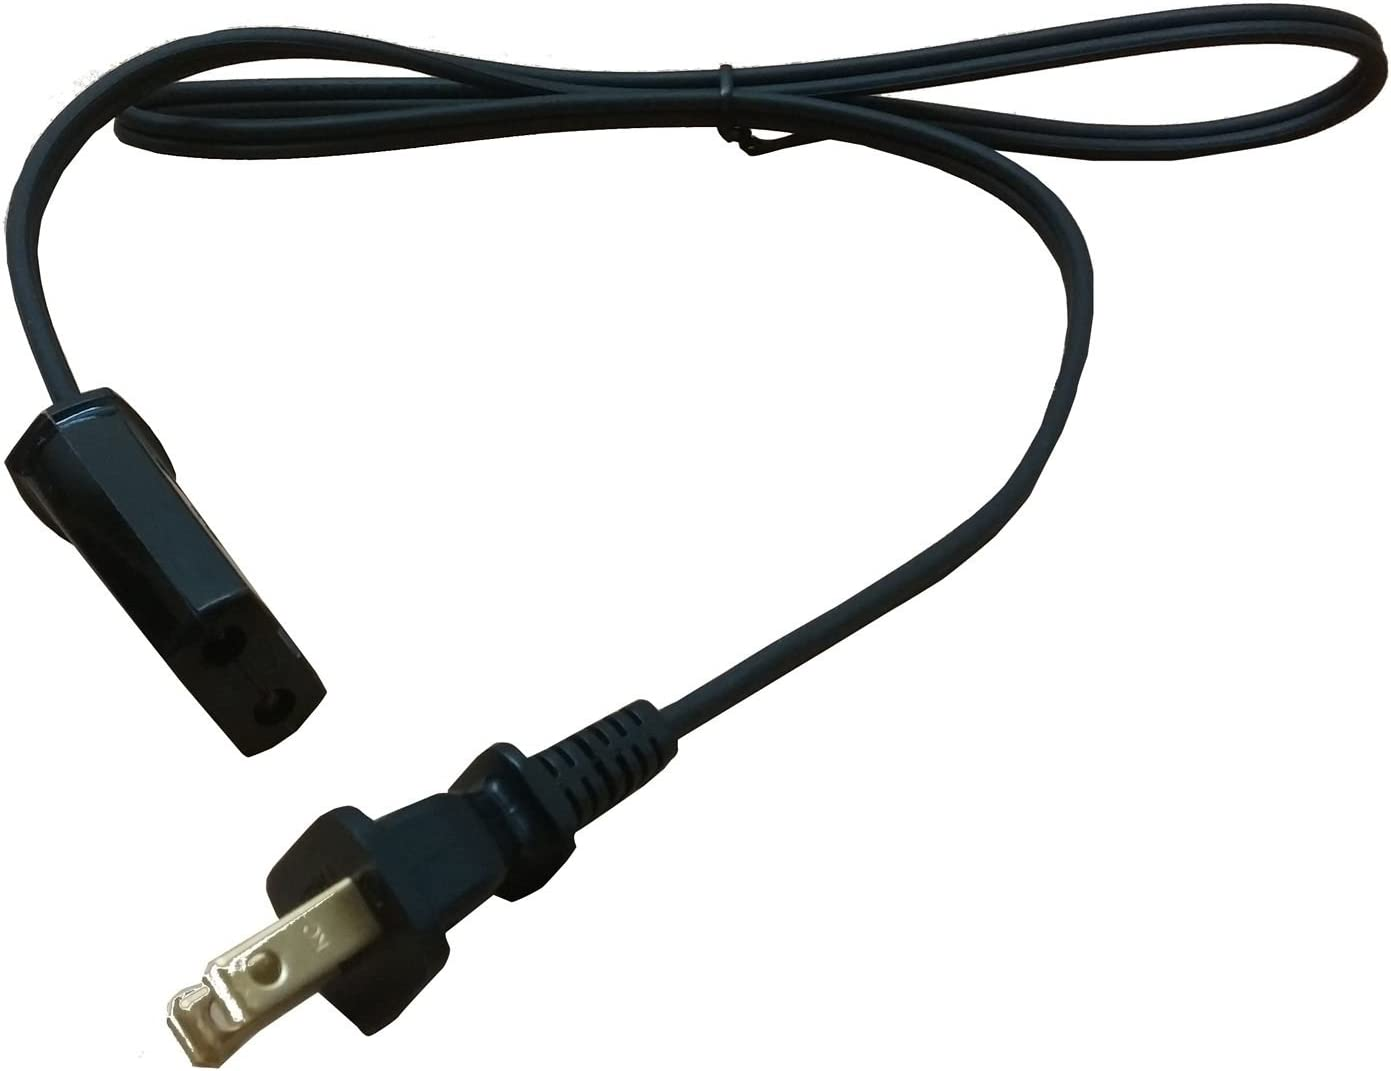 West Bend Coffee Urn 58028 9308 1-3510E Power Cord 2 Pin 36